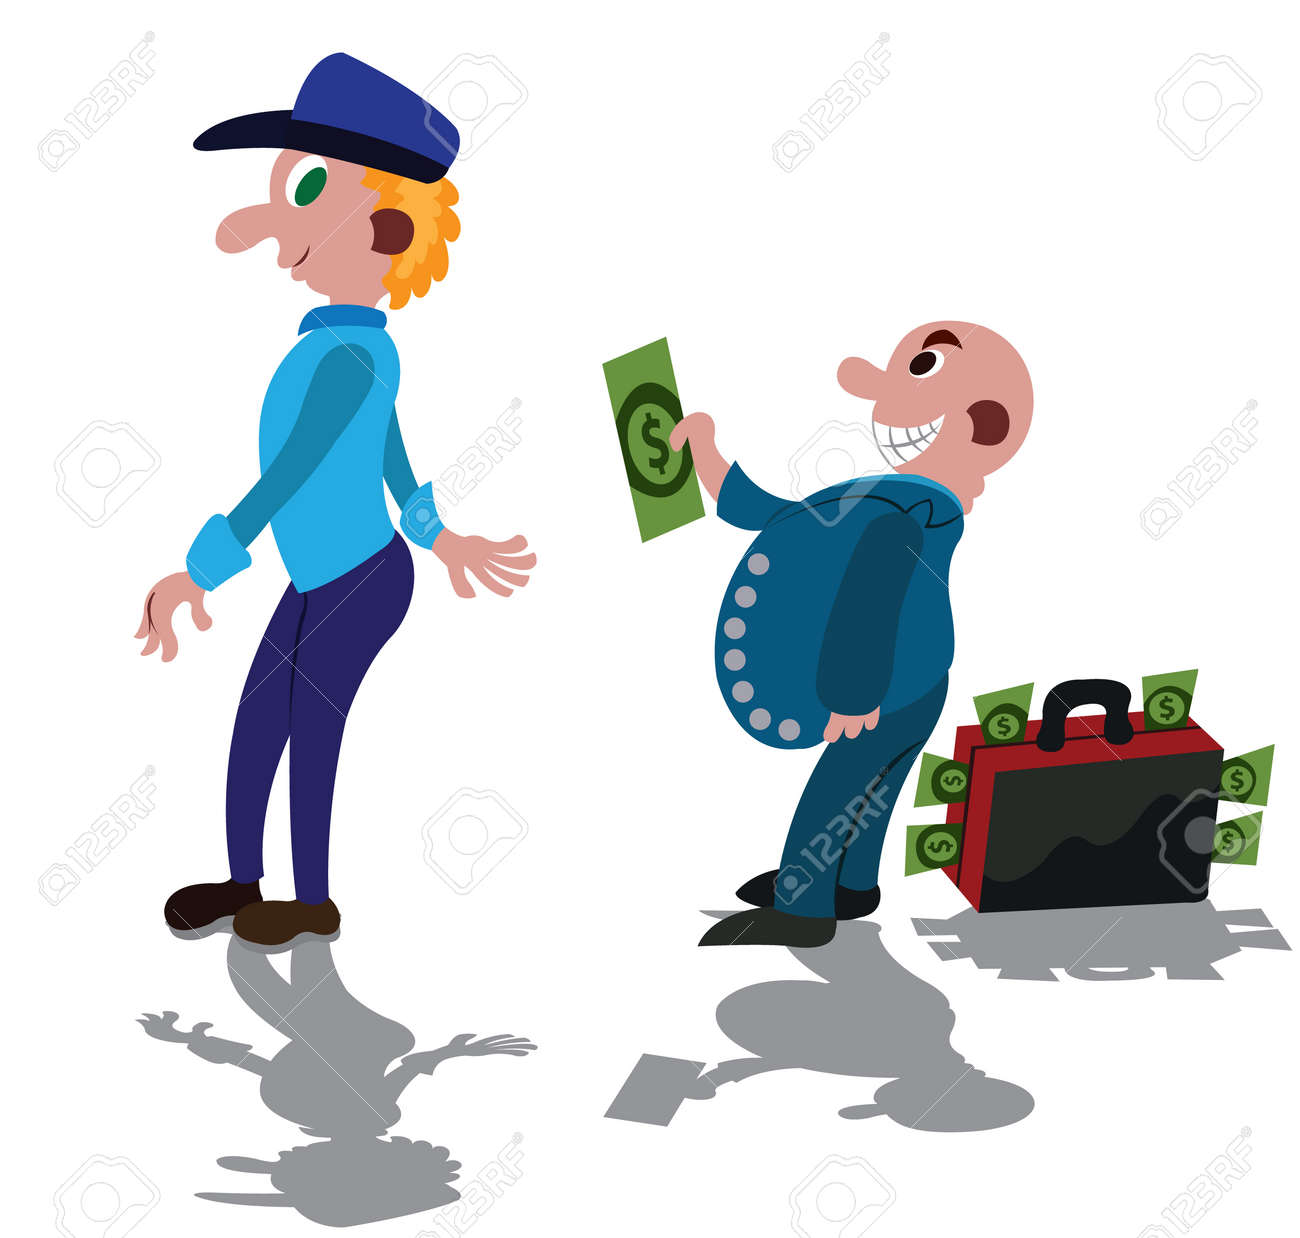 Bribery in full swing, A rich man bribing a corrupt Police Officer - 136599879